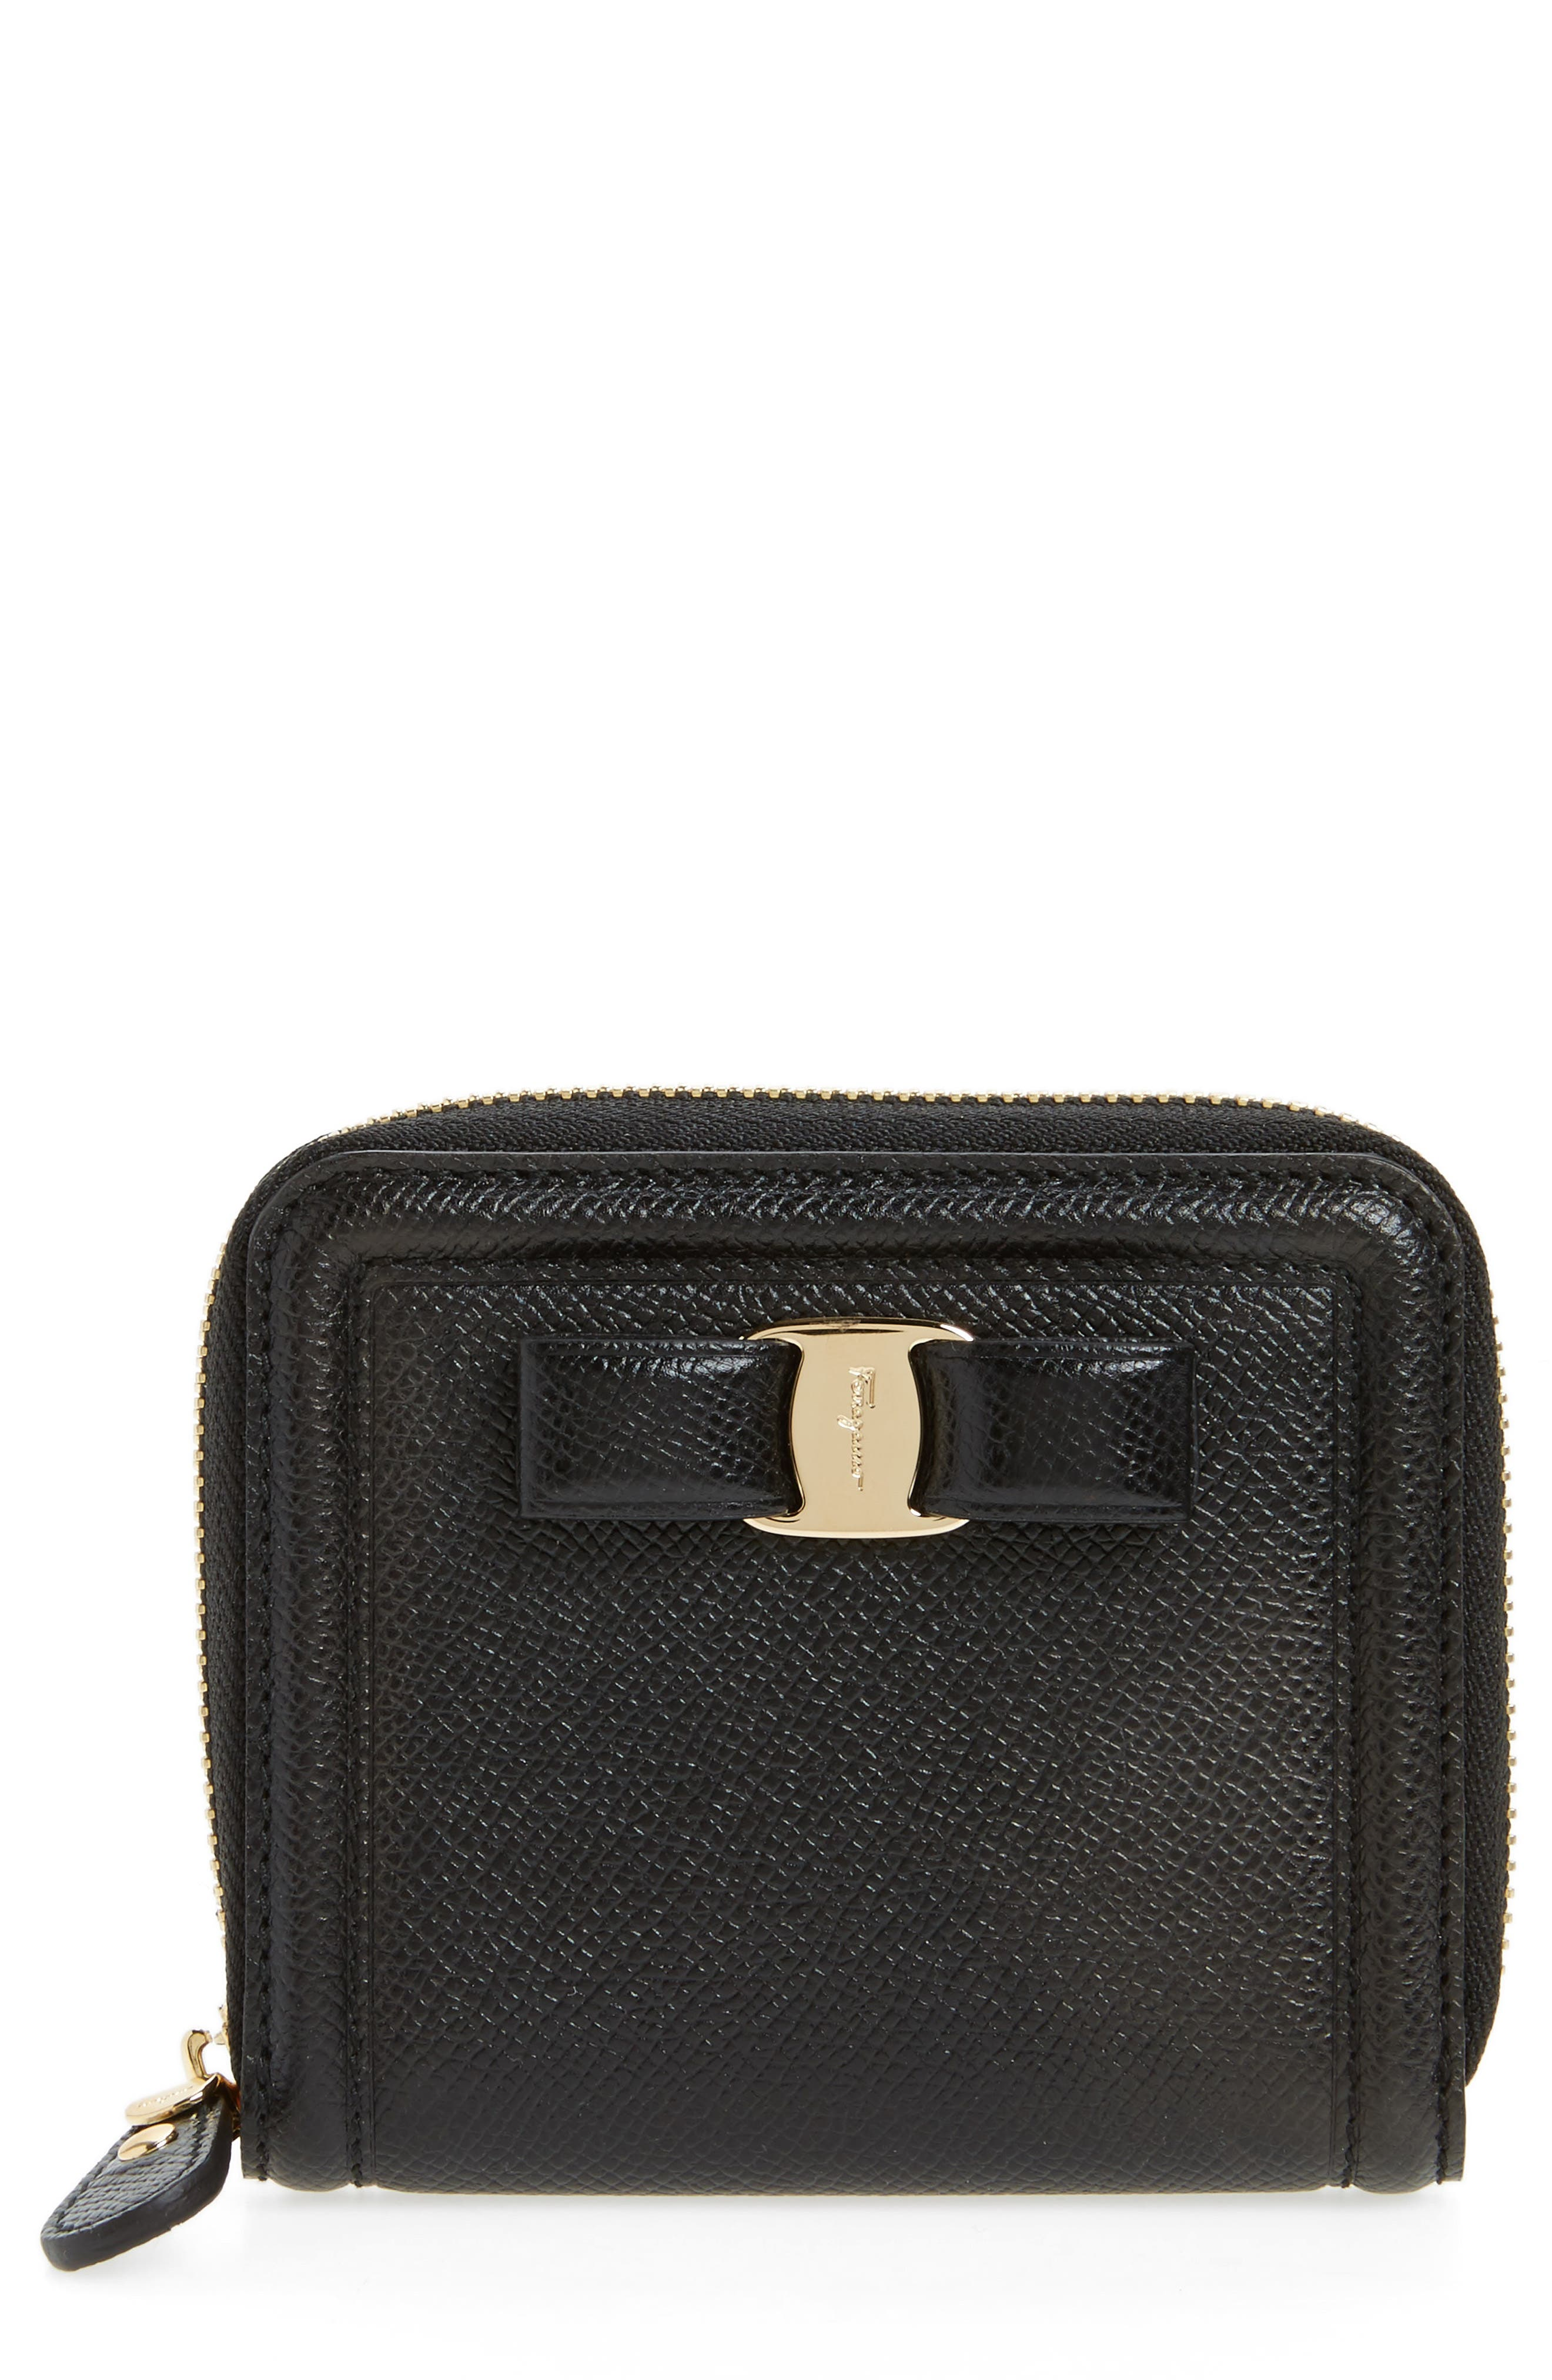 Vara Leather Zip Around French Wallet,                             Main thumbnail 1, color,                             Nero